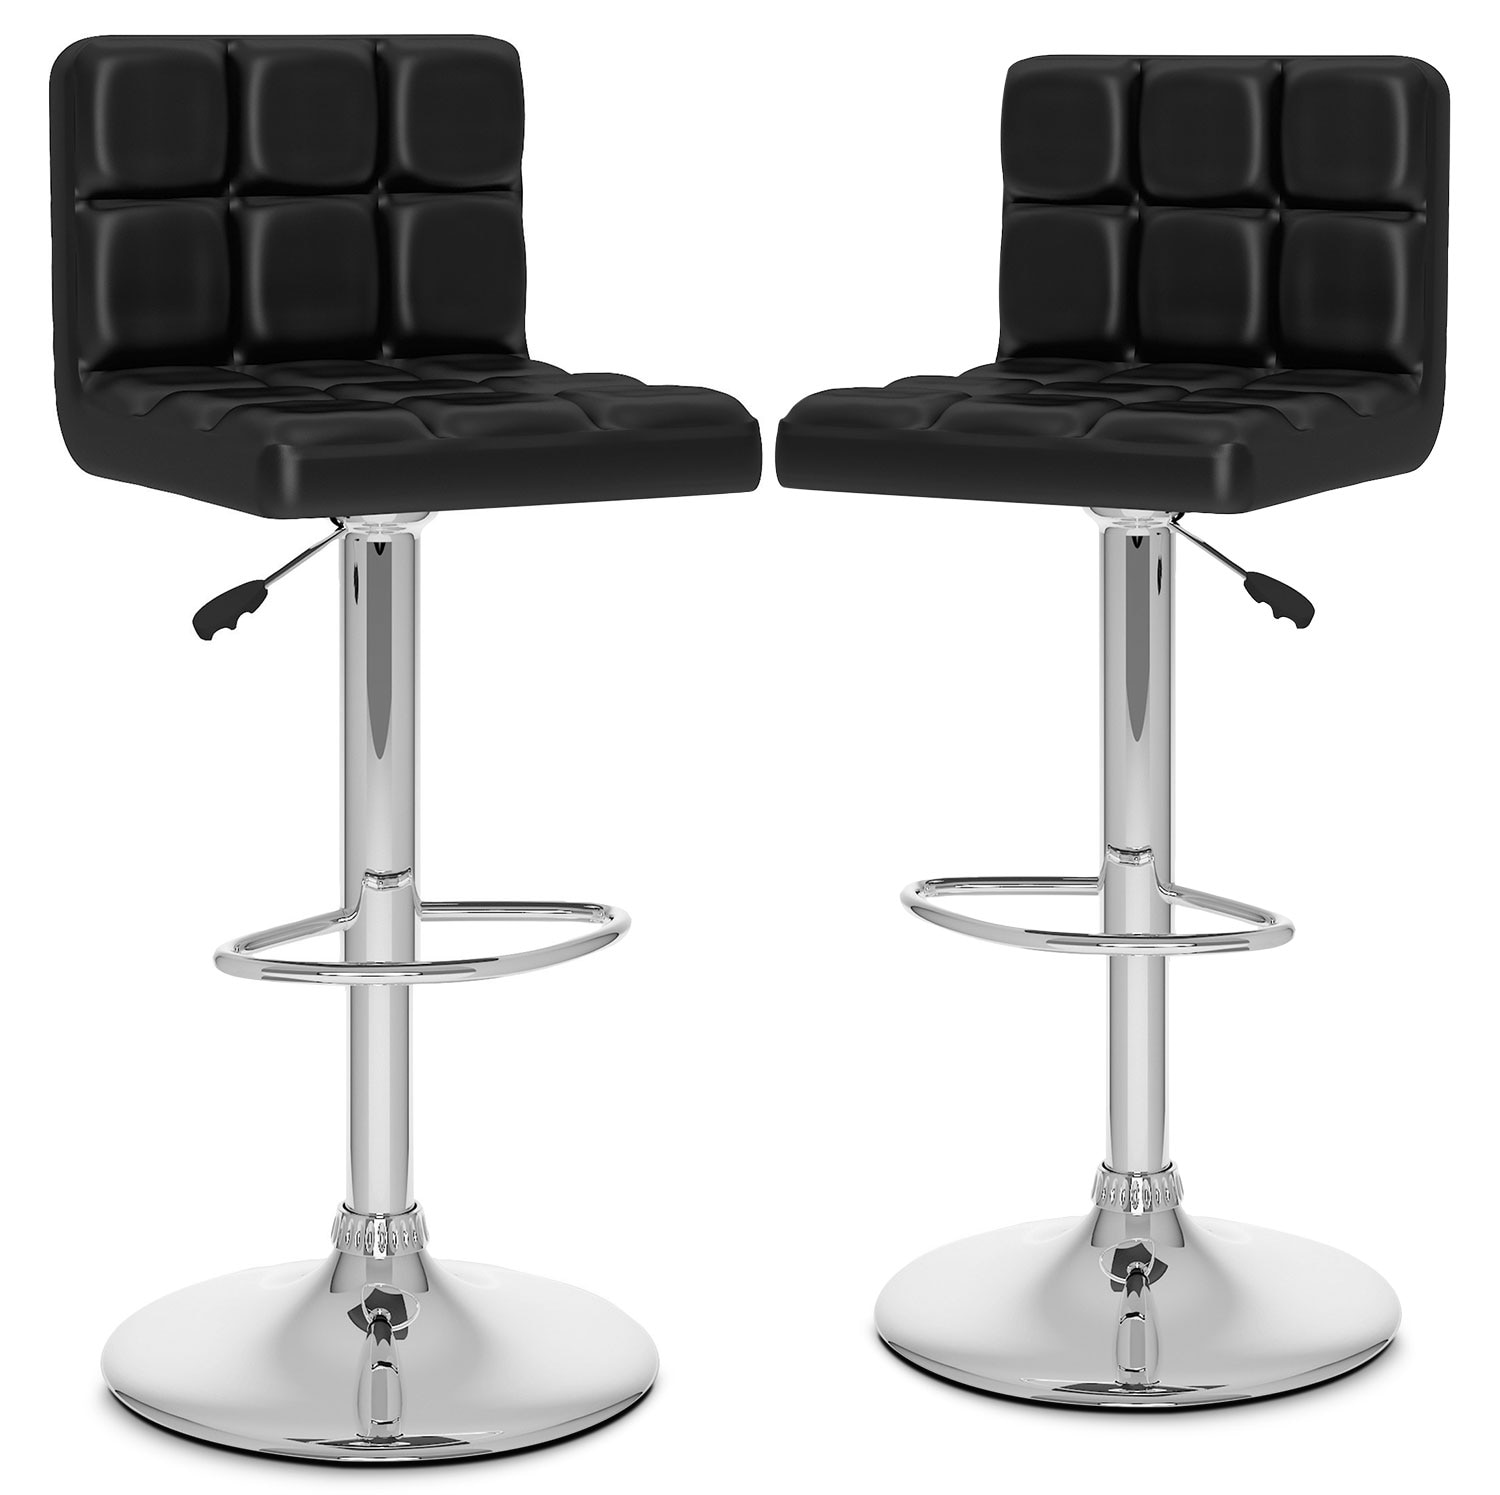 Dining Room Furniture - CorLiving High-Back Adjustable Bar Stool, Set of 2 – Black